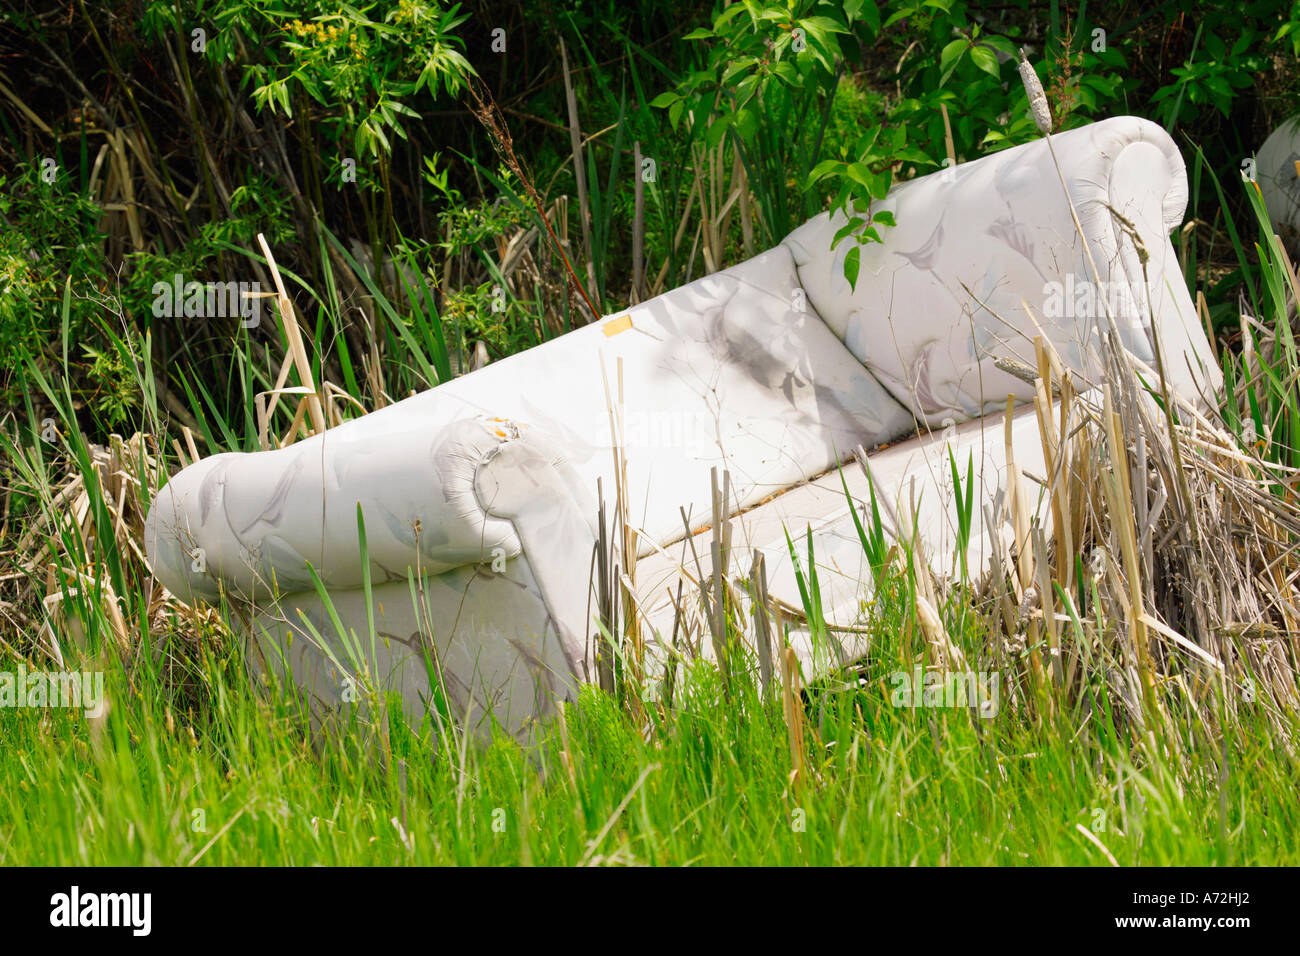 Discarded couch - Stock Image